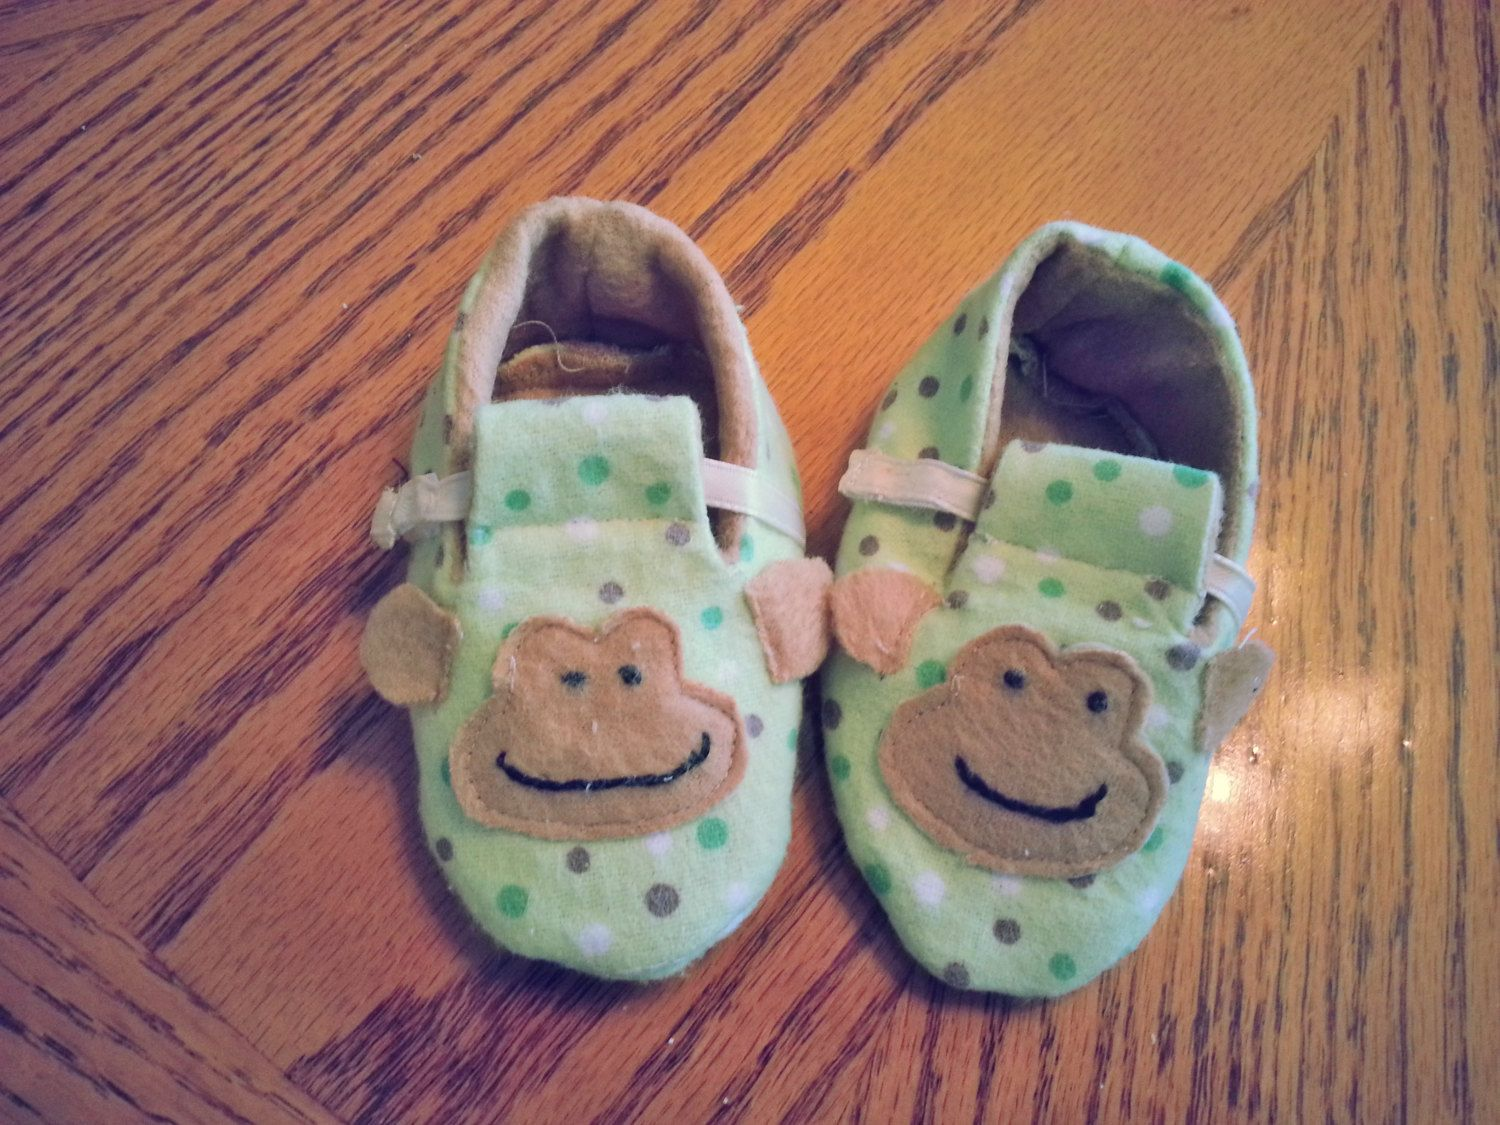 Colorful Monkey Shoes by Cuddlythreads on Etsy